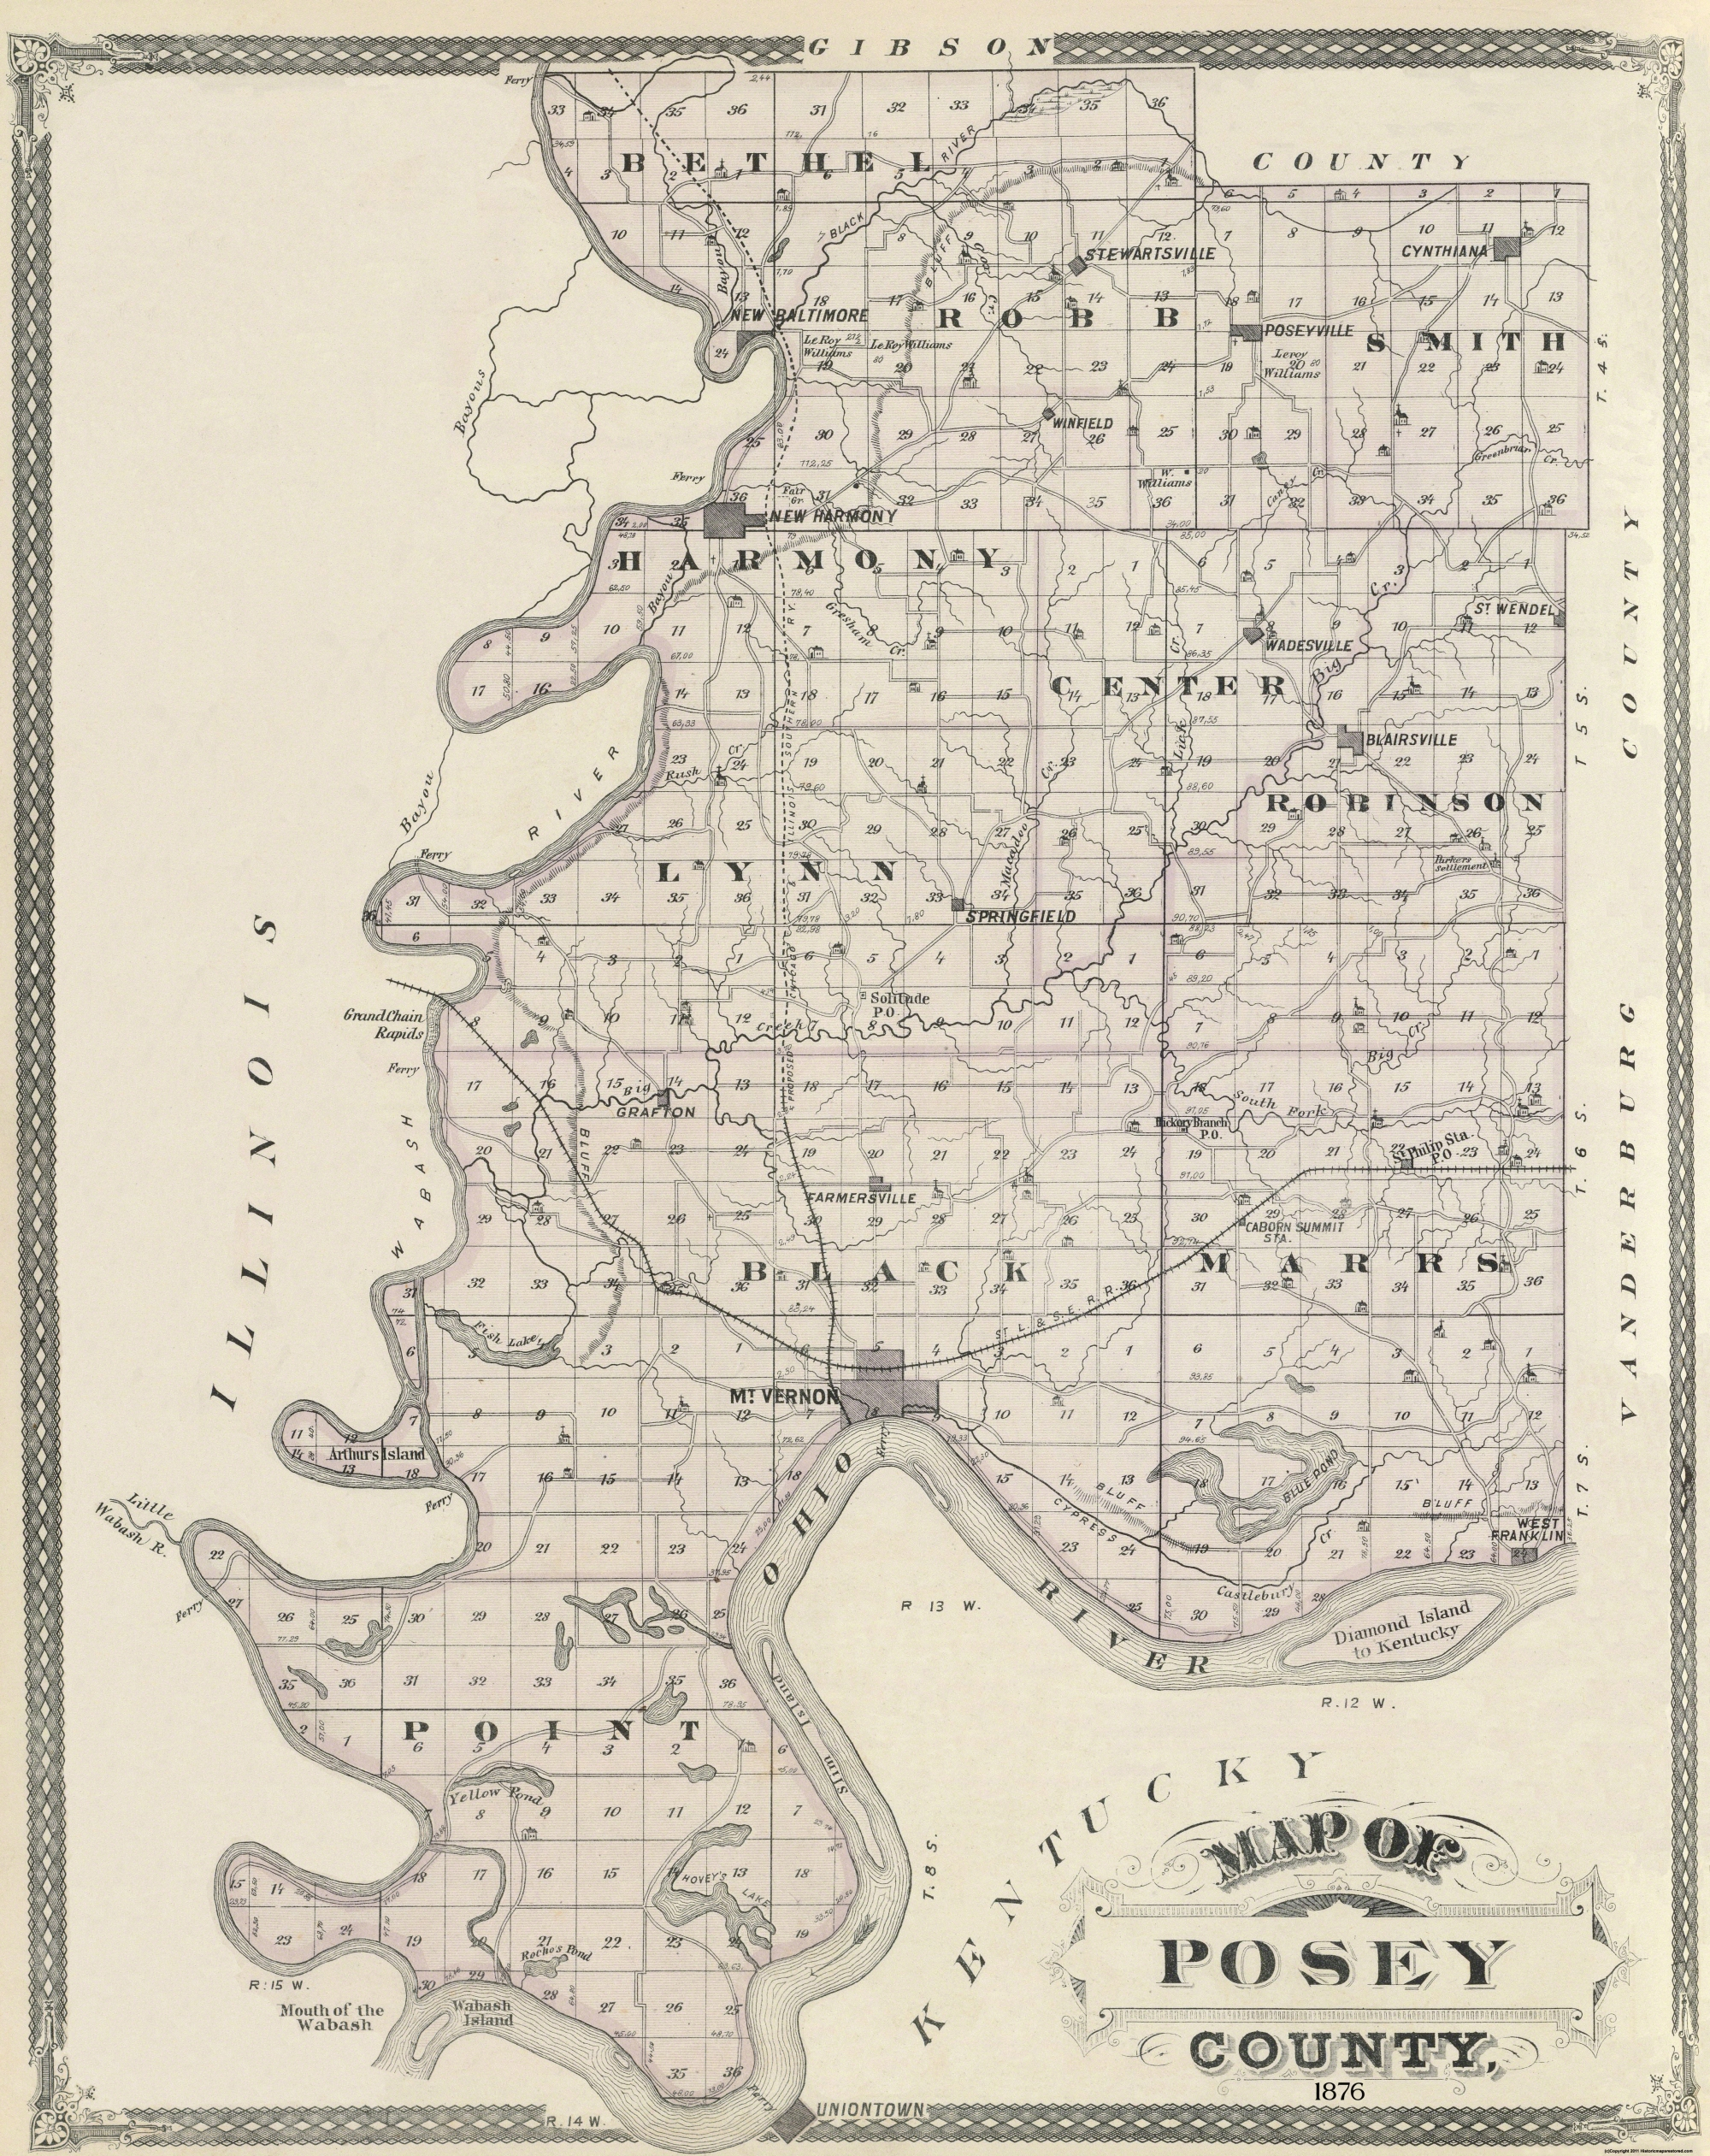 Old County Map Posey Indiana Landowner 1876